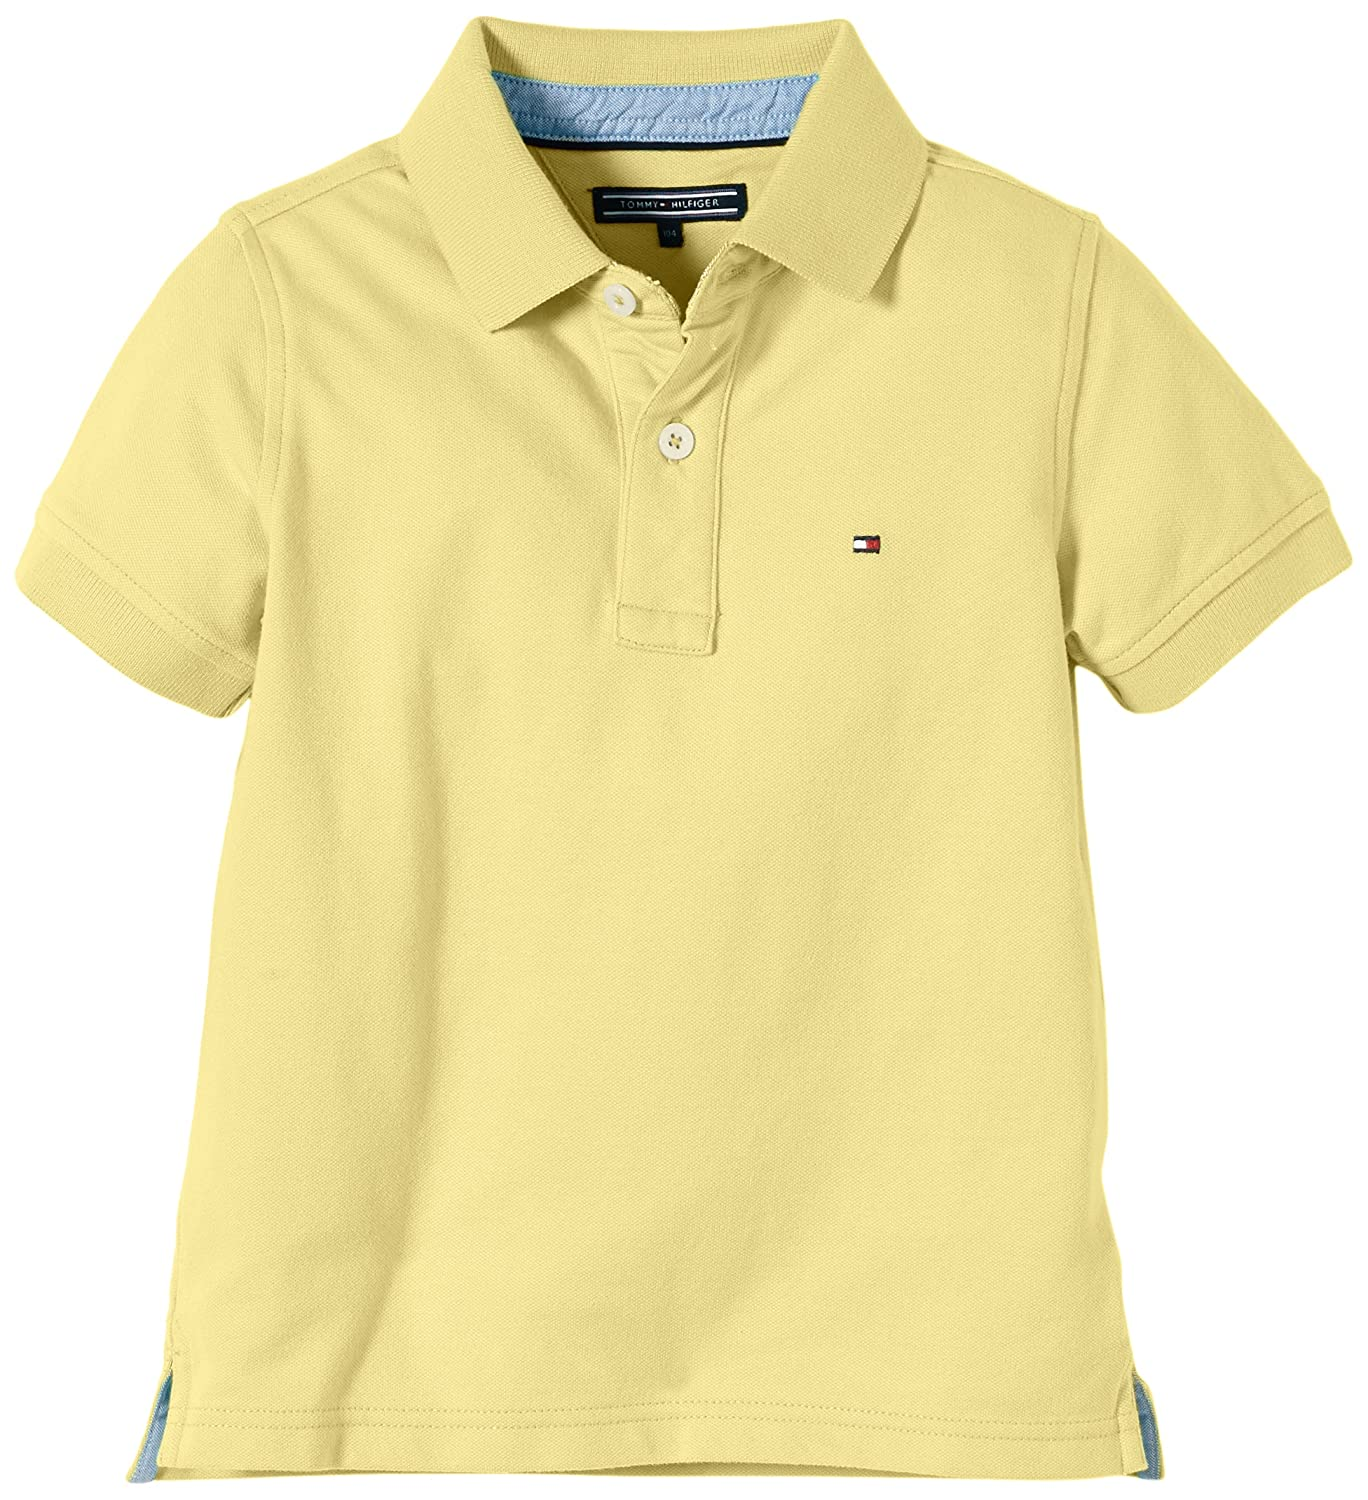 Tommy Hilfiger Tommy Polo S/S / E557117111, Niños, Gelb (865 ...